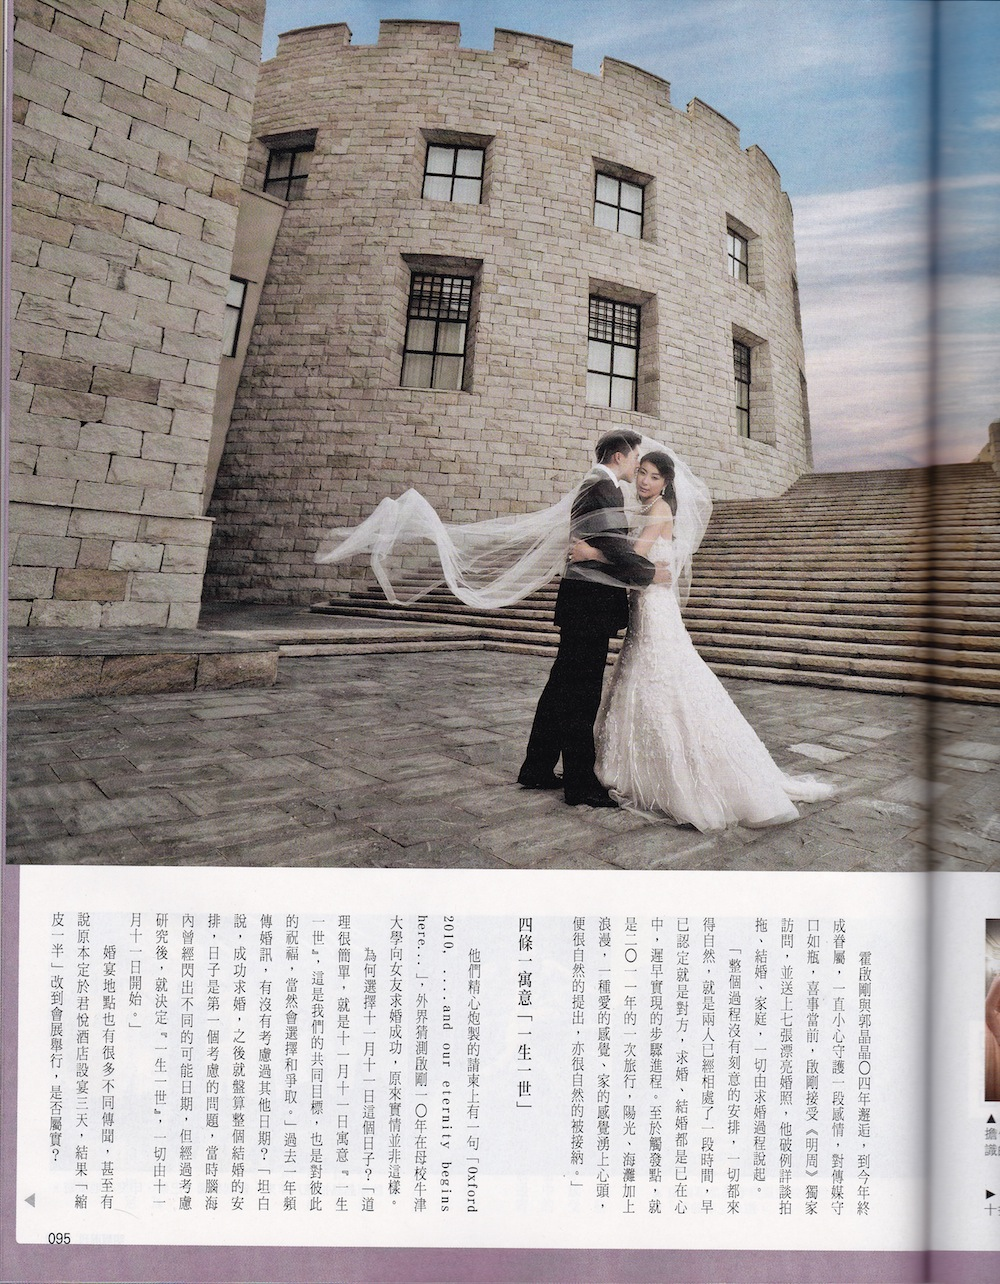 kenneth jingjing2 拷貝1 Mingpao Weekly coverage on Guo Jingjing & Kenneth Foks wedding